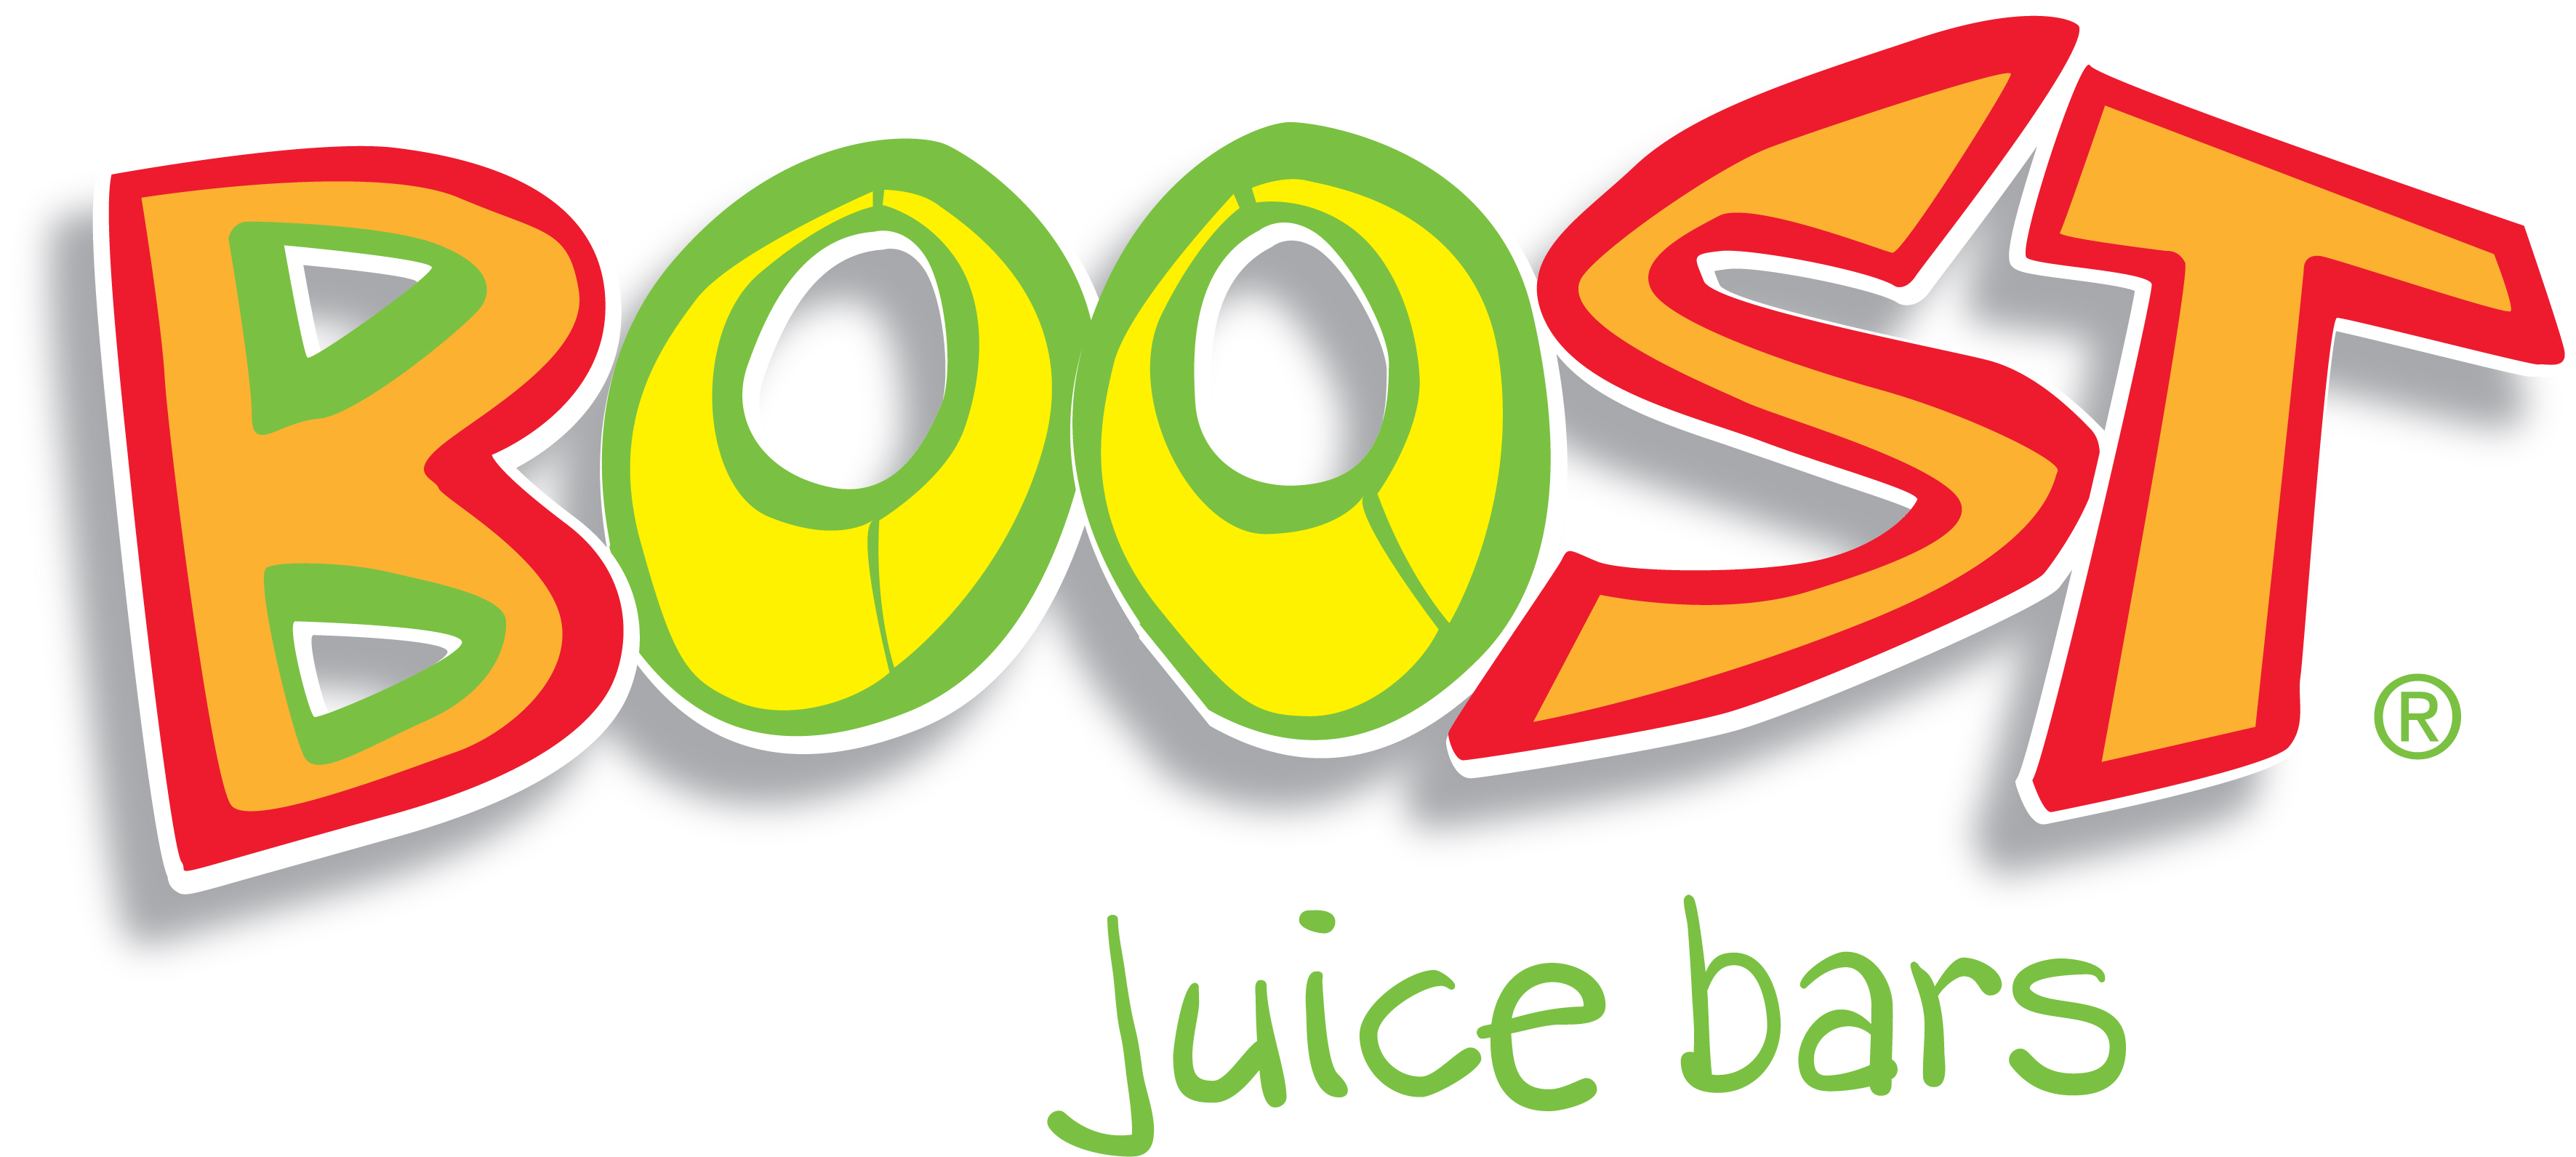 boost juice Get inspired with fun health tips, tricks and facts on how to obtain a healthy lifestyle want to get in touch on feedback or to collaborate, please contact us.